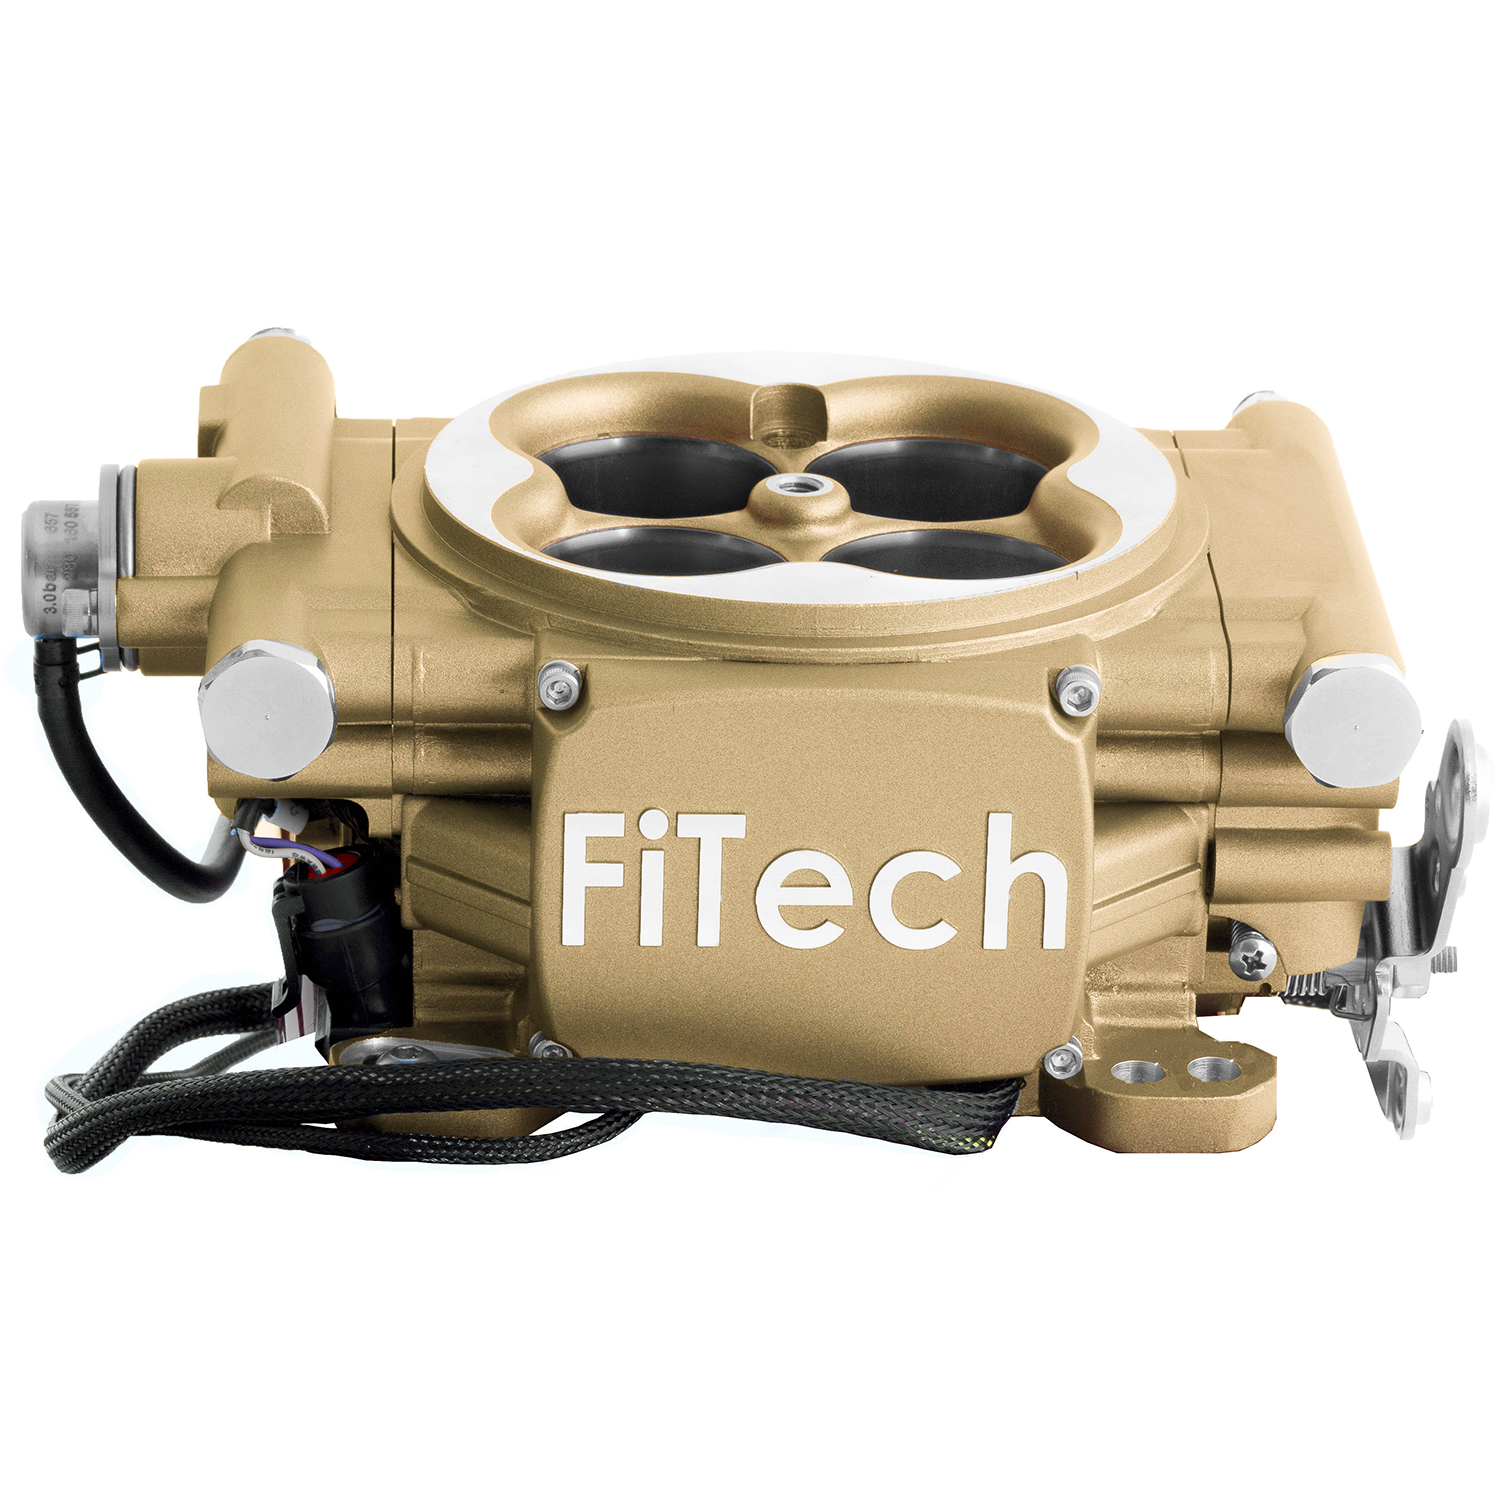 FiTech, Easy Street Self-Tuning Fuel Injection System, Up to 600HP